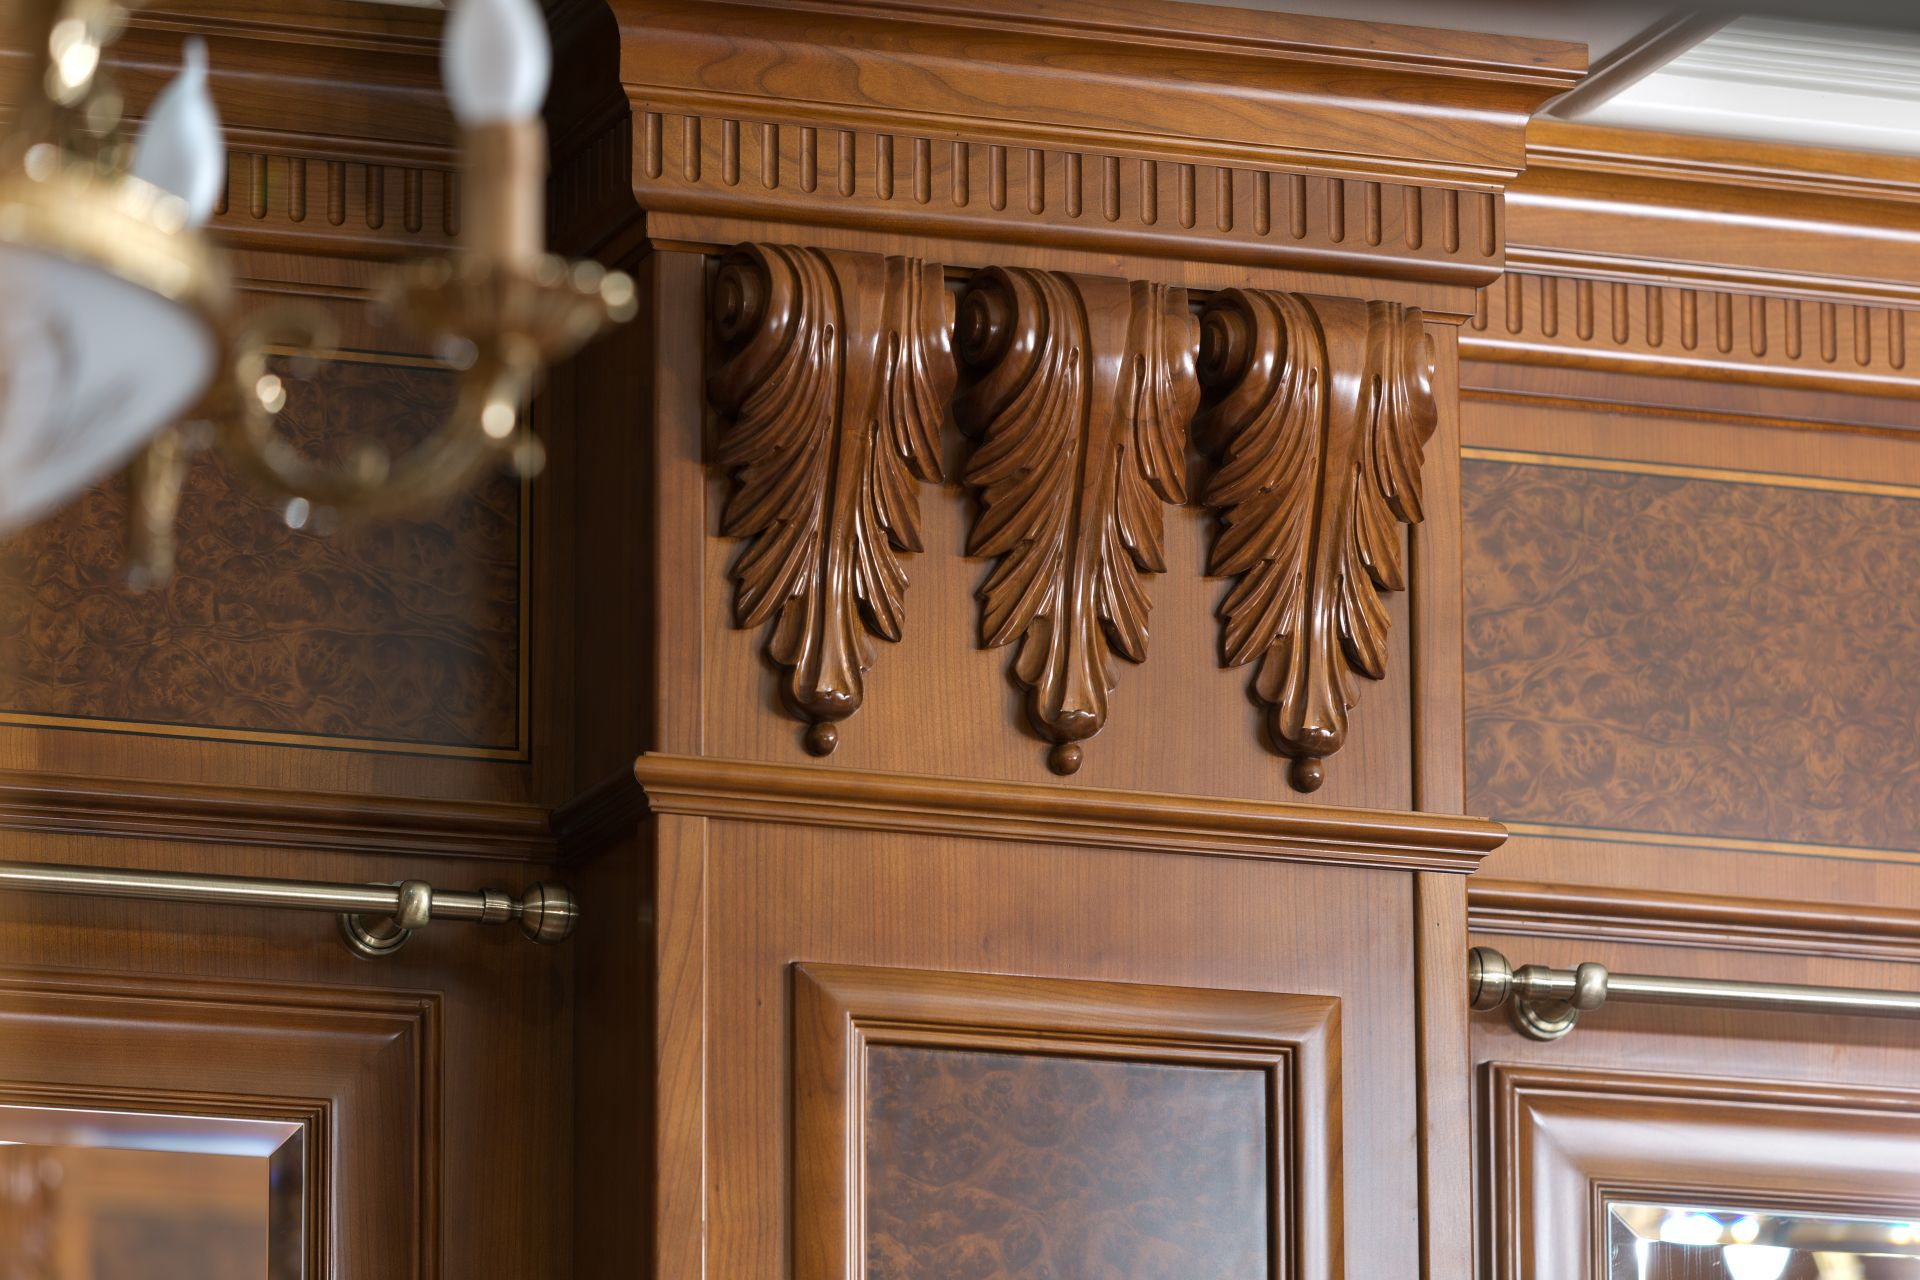 Carved corbel, wood carving